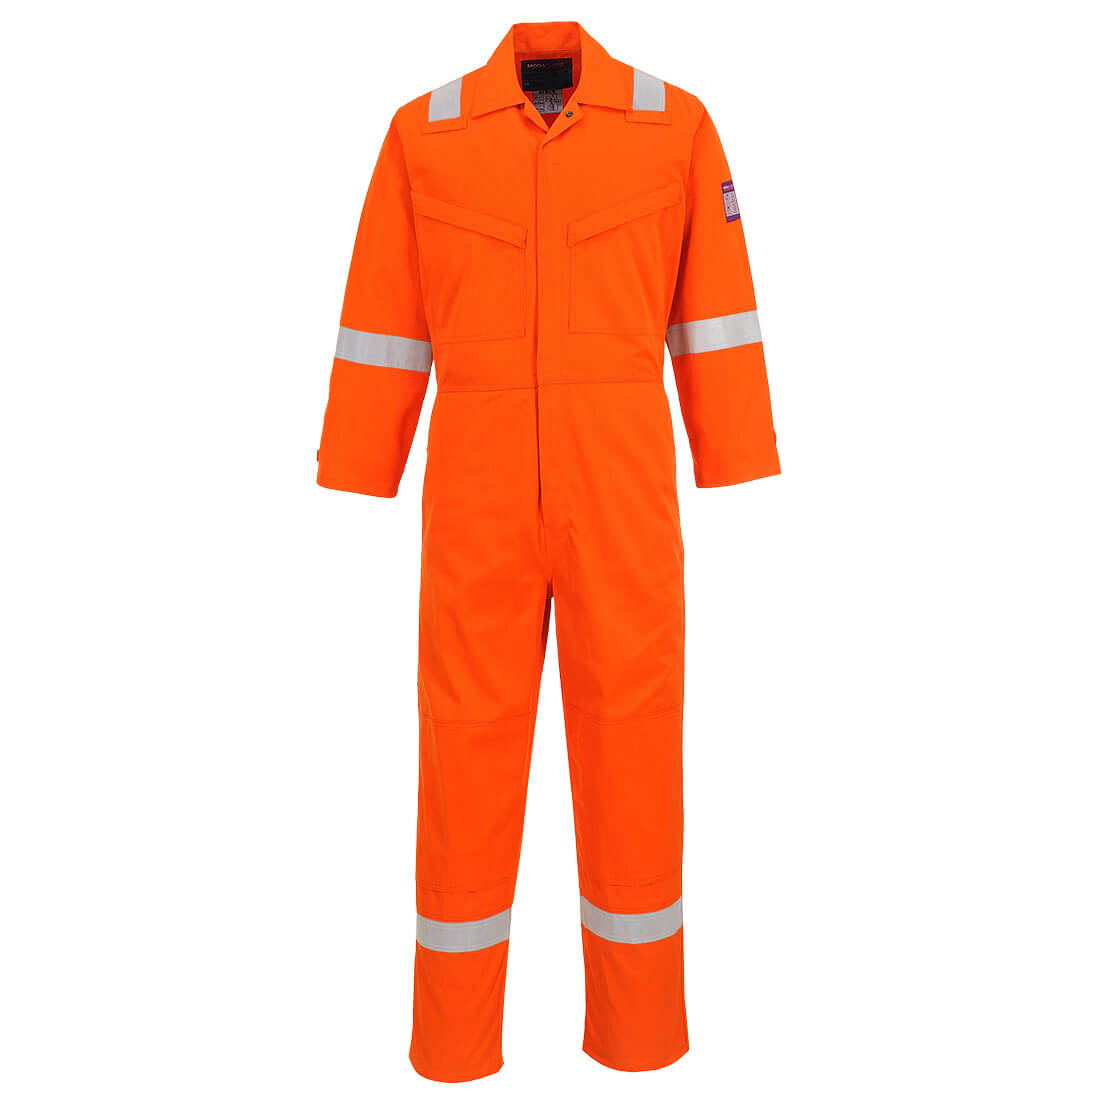 Image of Modaflame Mens Flame Resistant Overall Orange 3XL